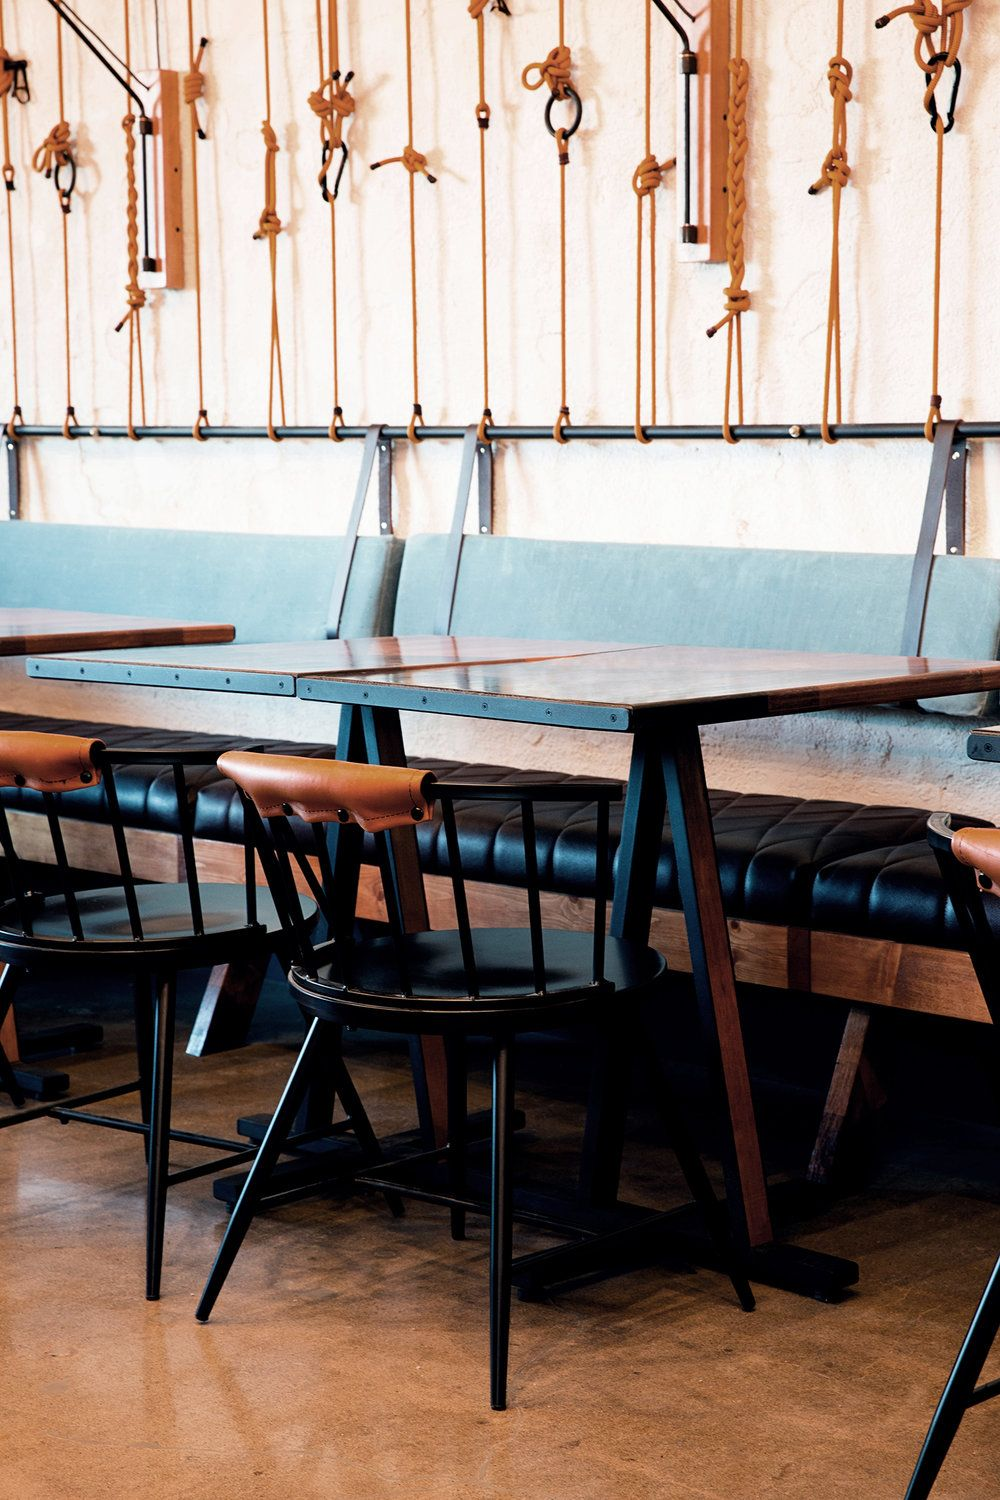 Restaurant Banquette Rope Wall Hanging Cushions Waxed ...